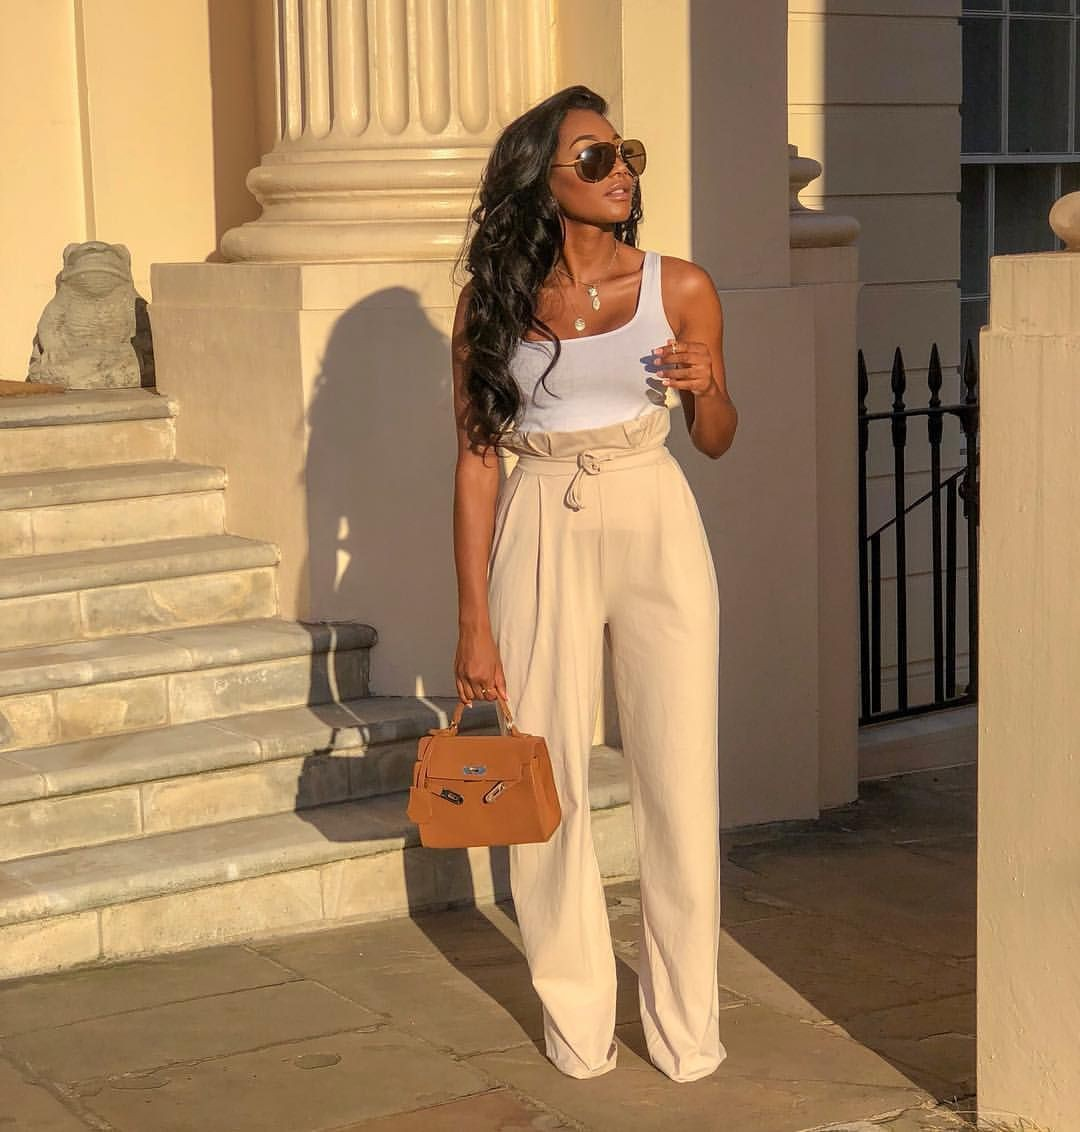 Brown and khaki outfit Pinterest with fashion accessory, trousers